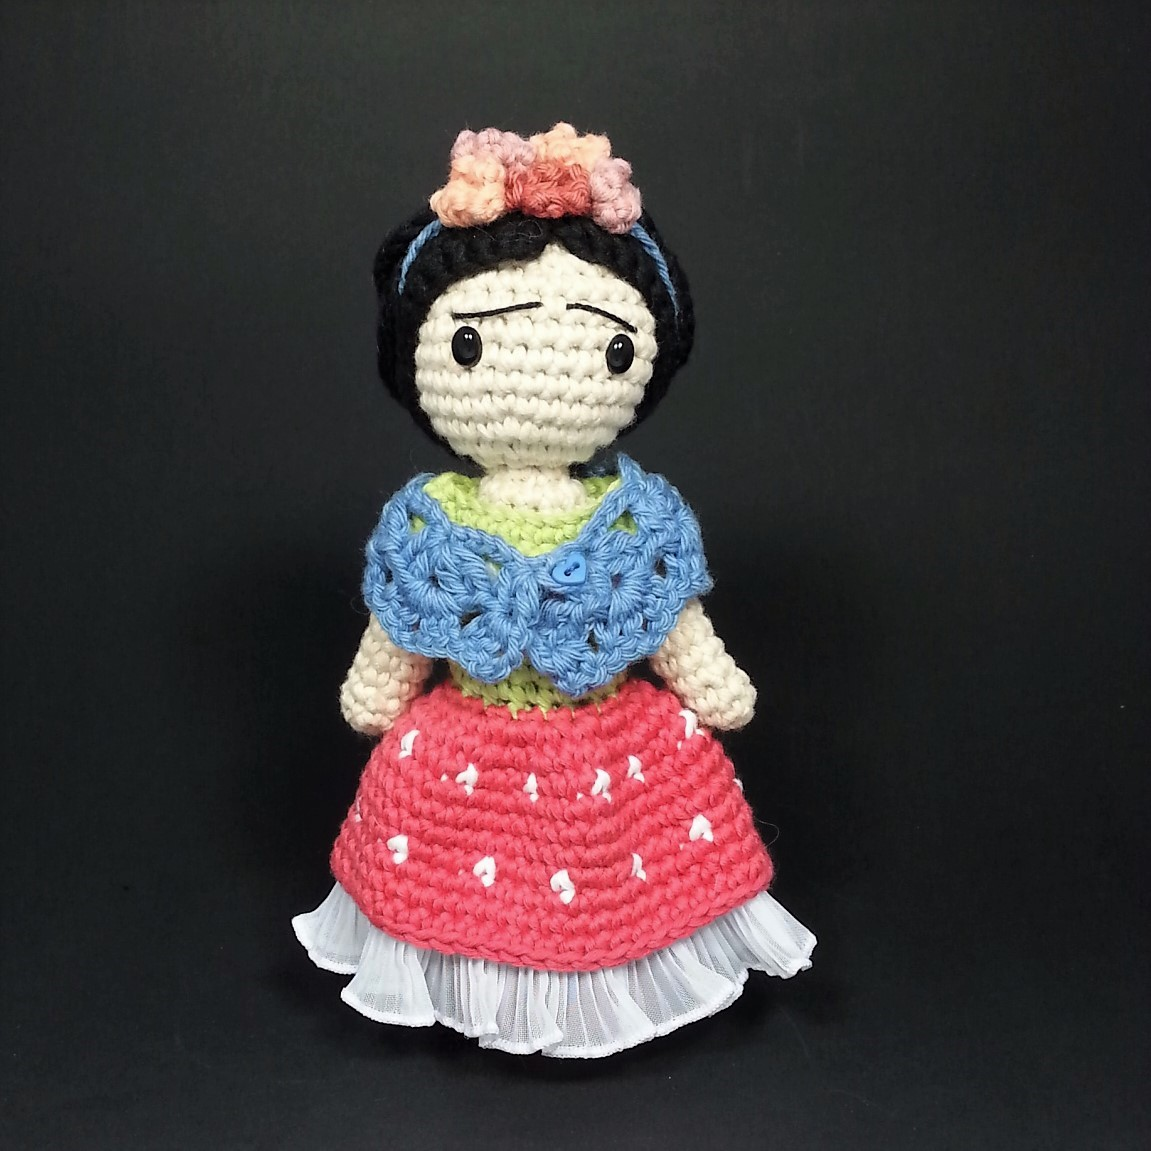 Descabdello: The Frida Kahlo crochet pattern, in english